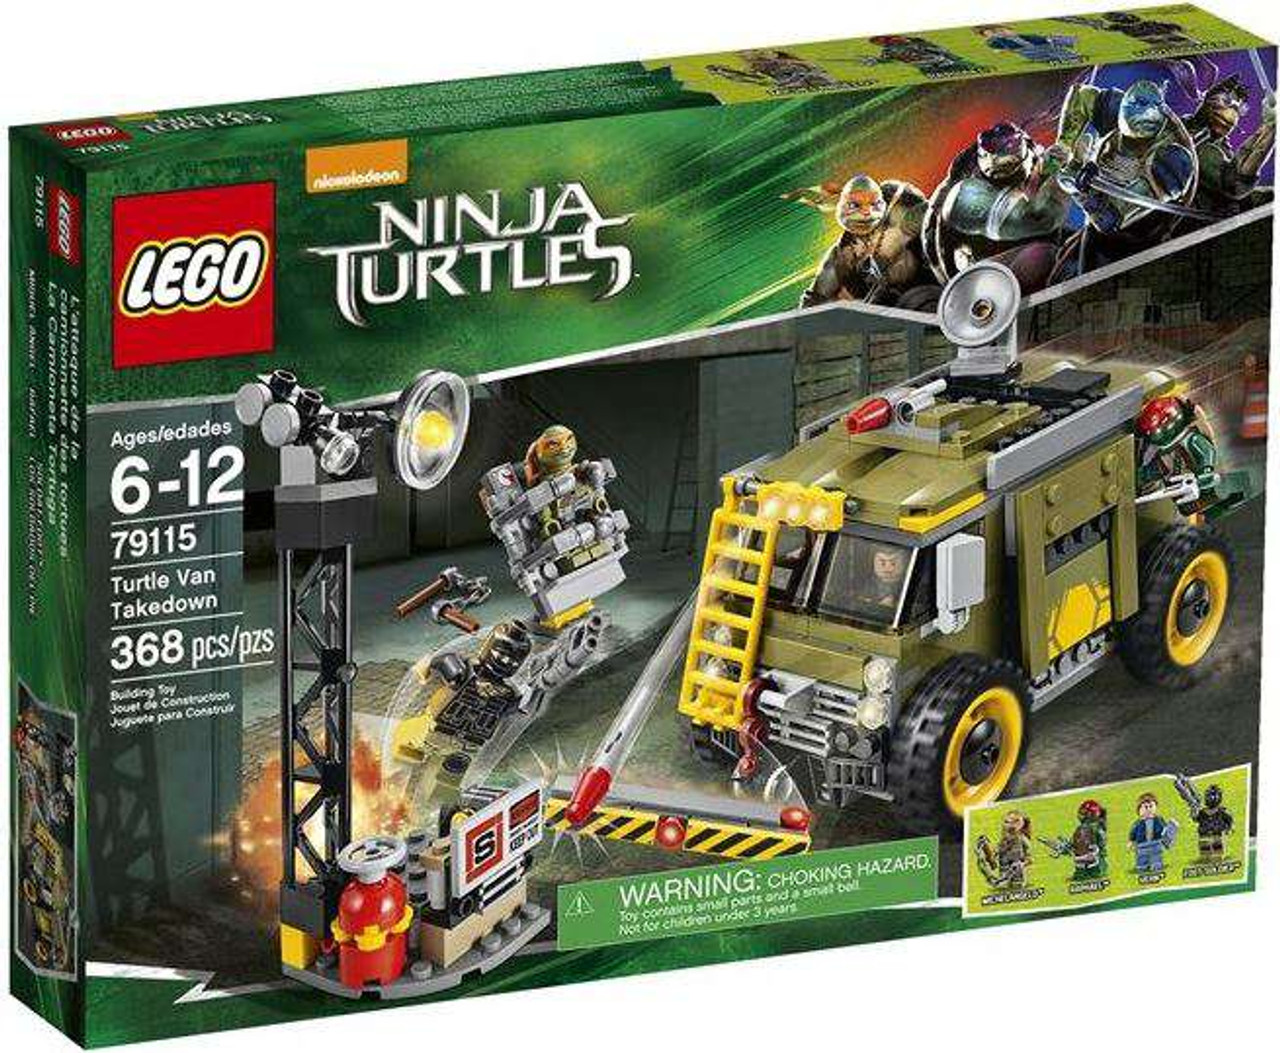 LEGO Teenage Mutant Ninja Turtles Ninja Turtles 2014 Turtle Van Takedown Set #79115